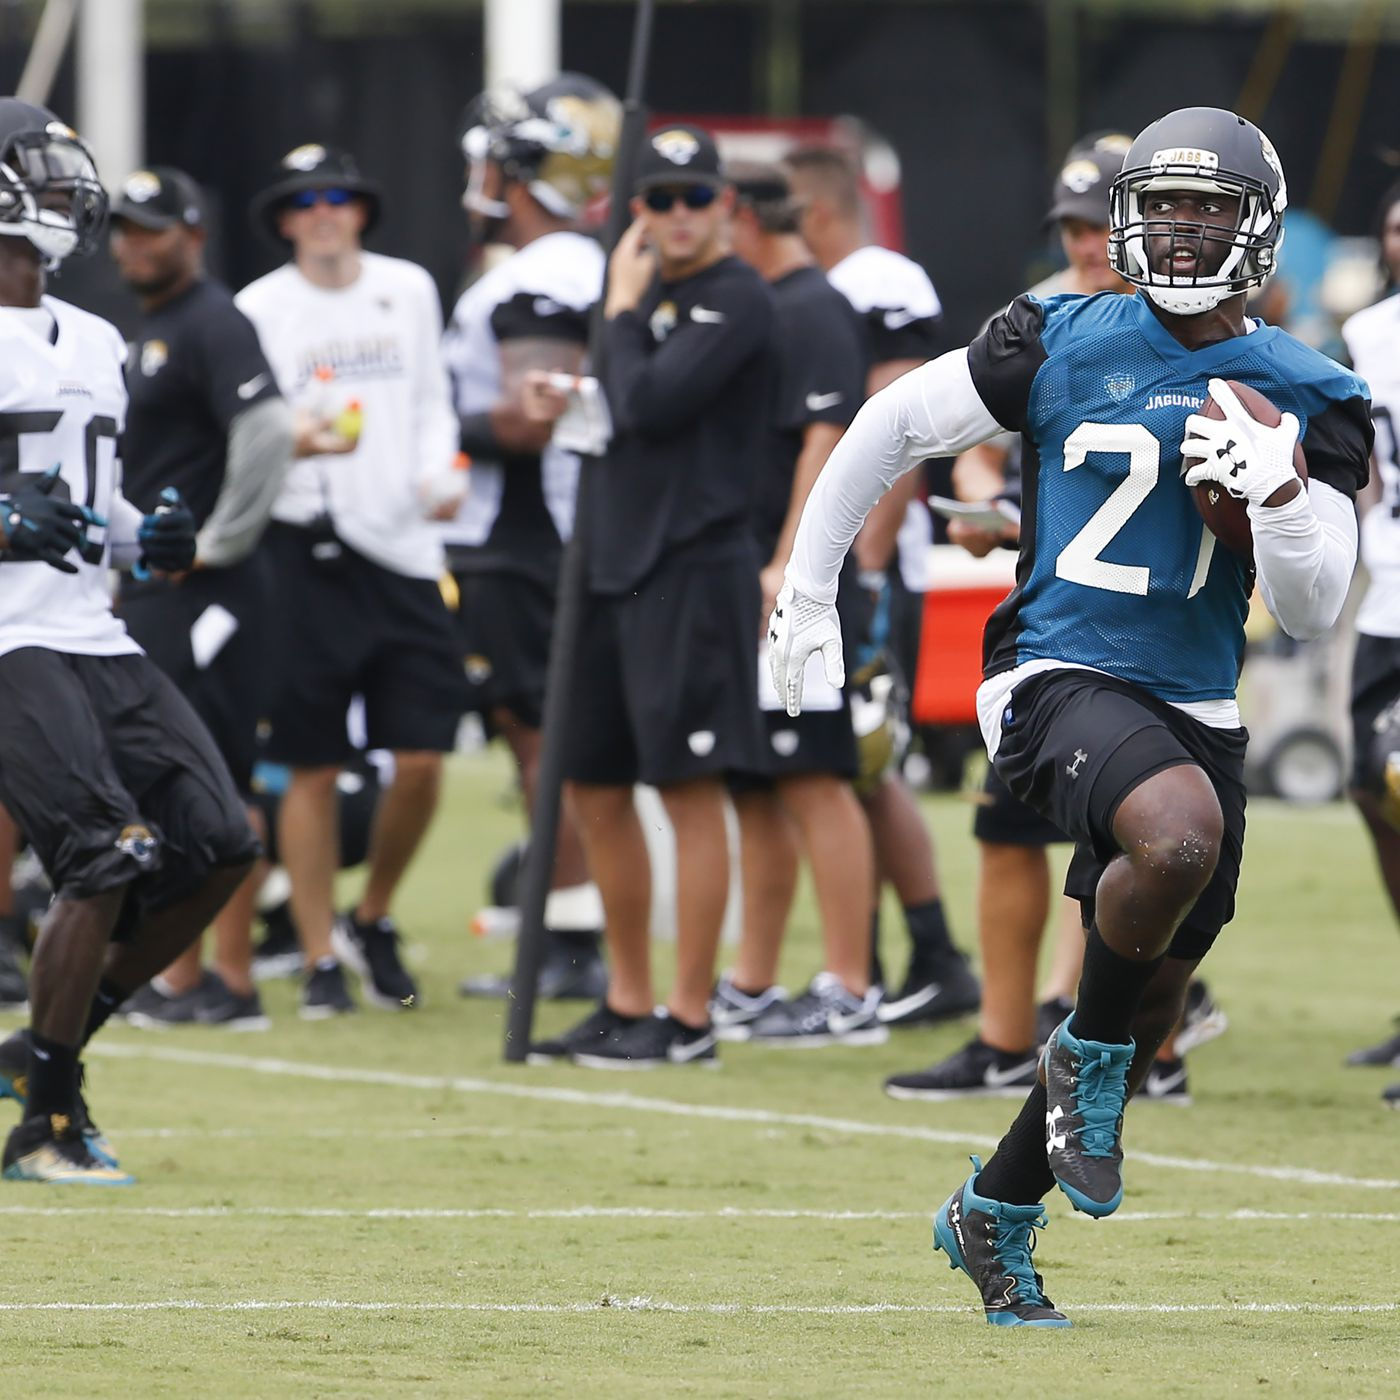 Jaguars Release First Unofficial Depth Chart For 2017 Season